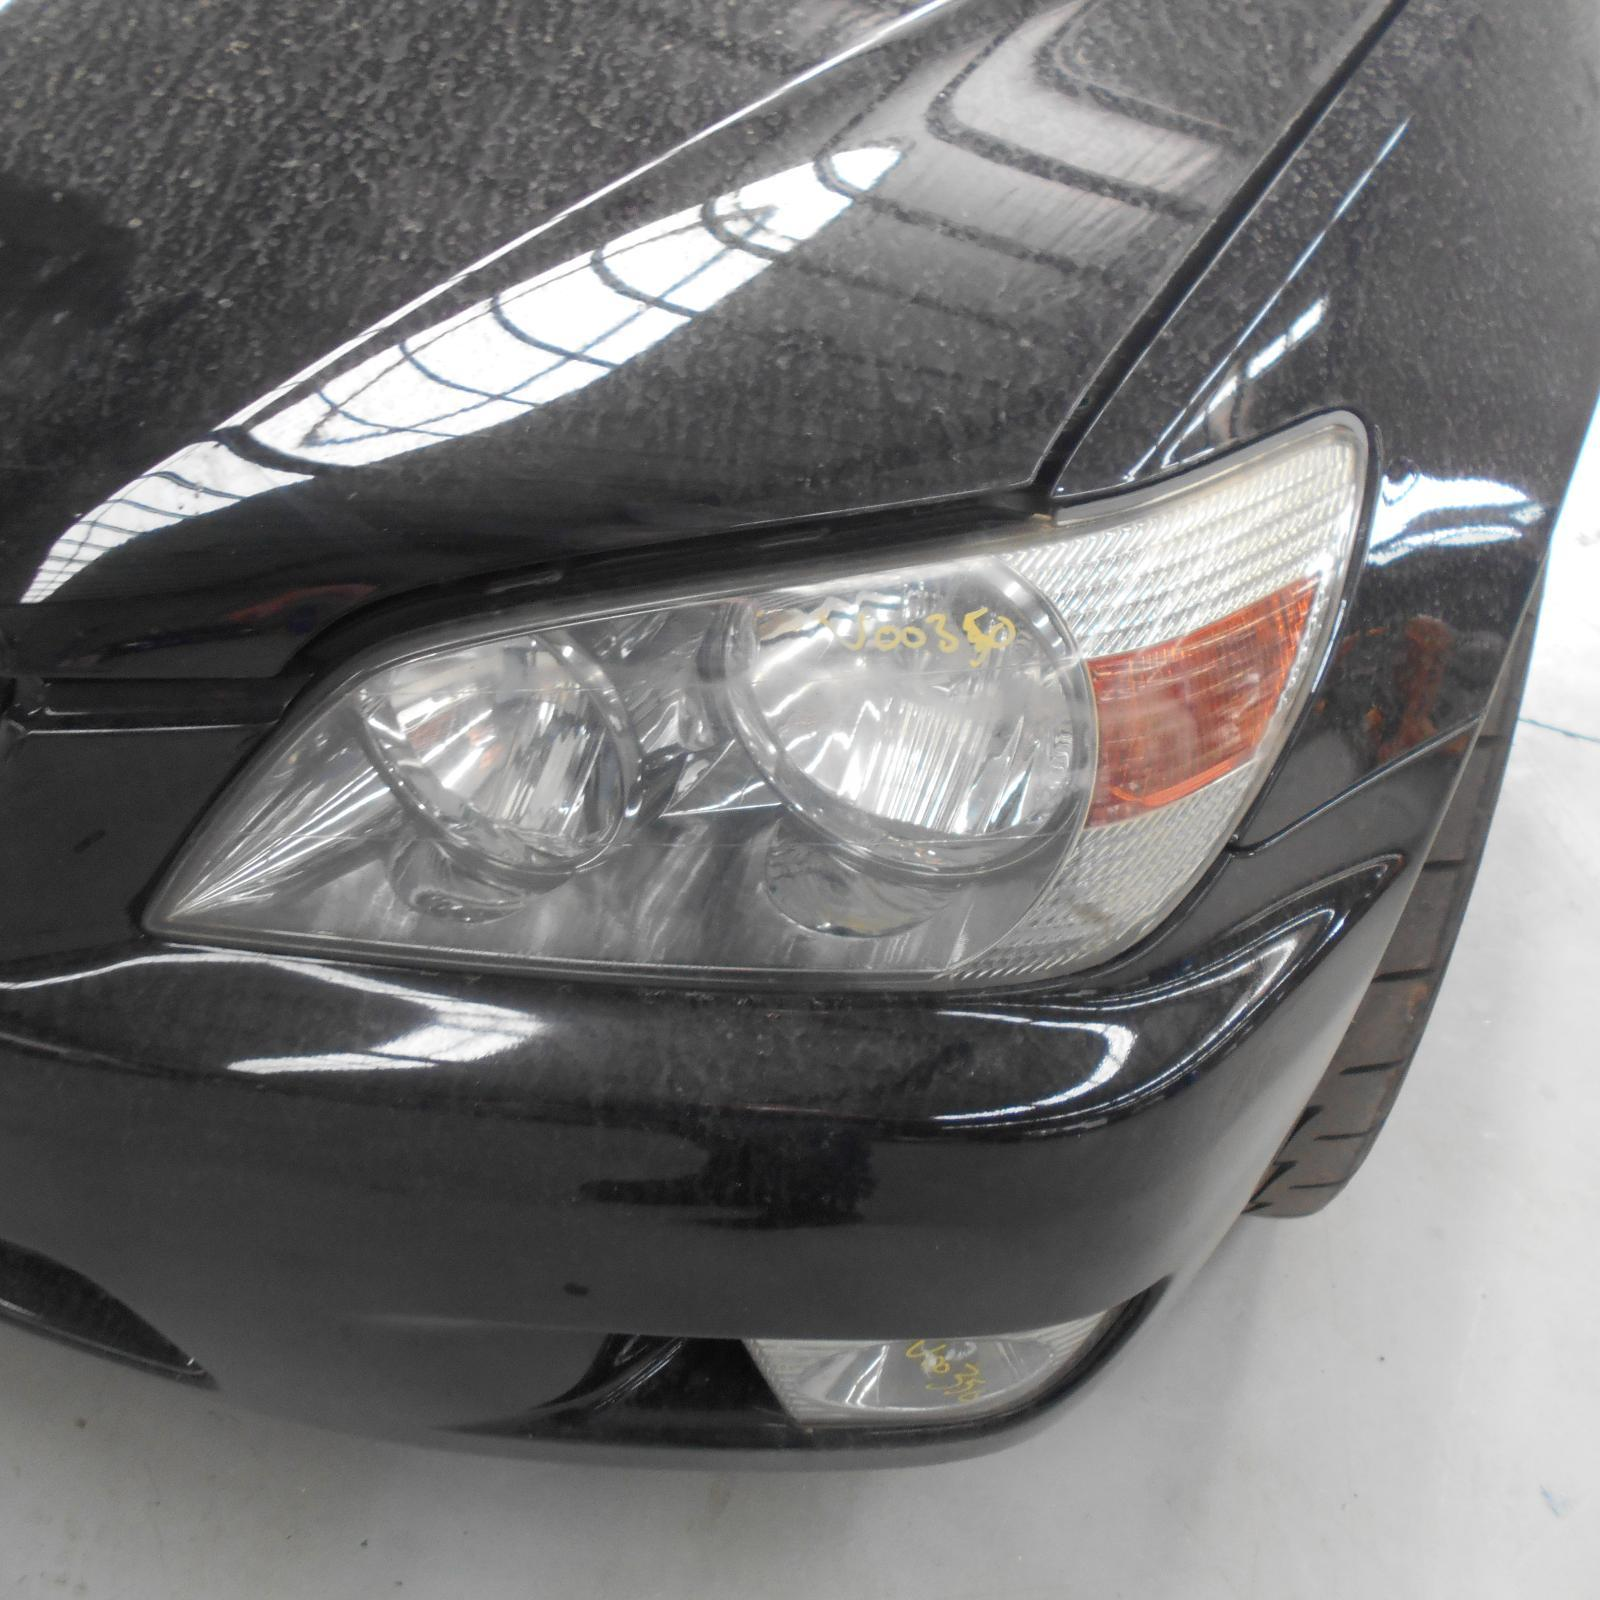 LEXUS IS200/IS300, Left Headlamp, HALOGEN, KOITO LENS# 53-1, MANUAL ADJUSTER, 01/98-07/05